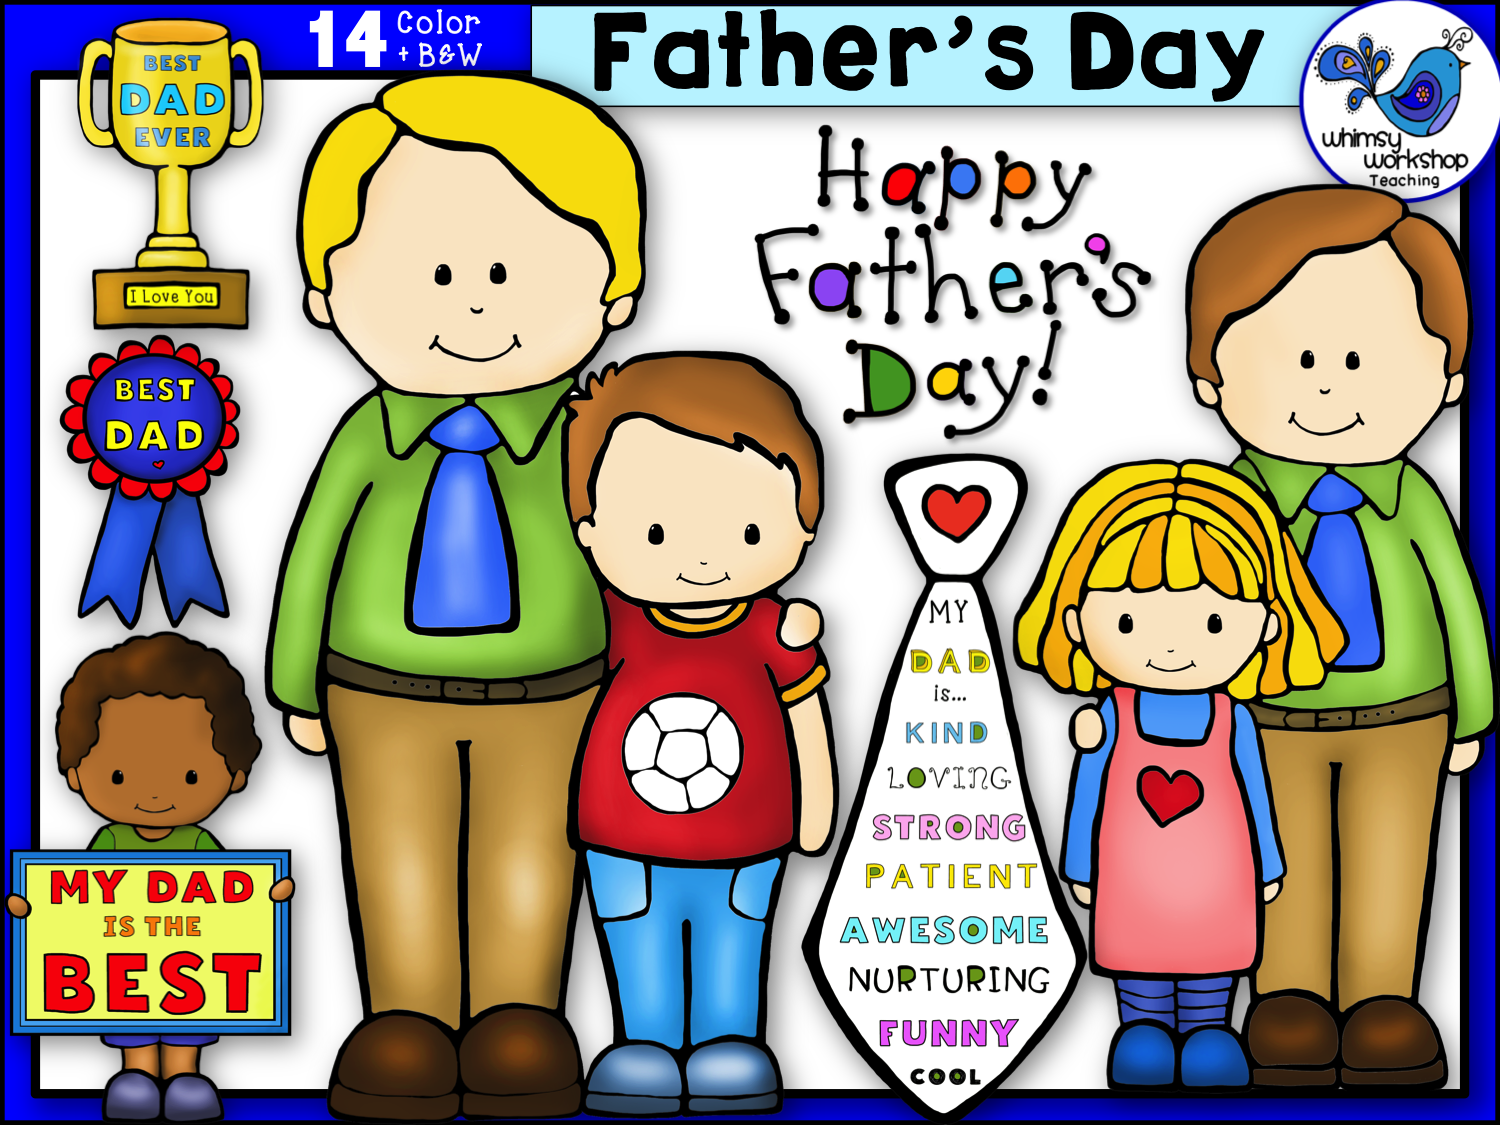 free new set of father s day clip art 14 graphics in color and black and white whimsy workshop teaching [ 1500 x 1125 Pixel ]